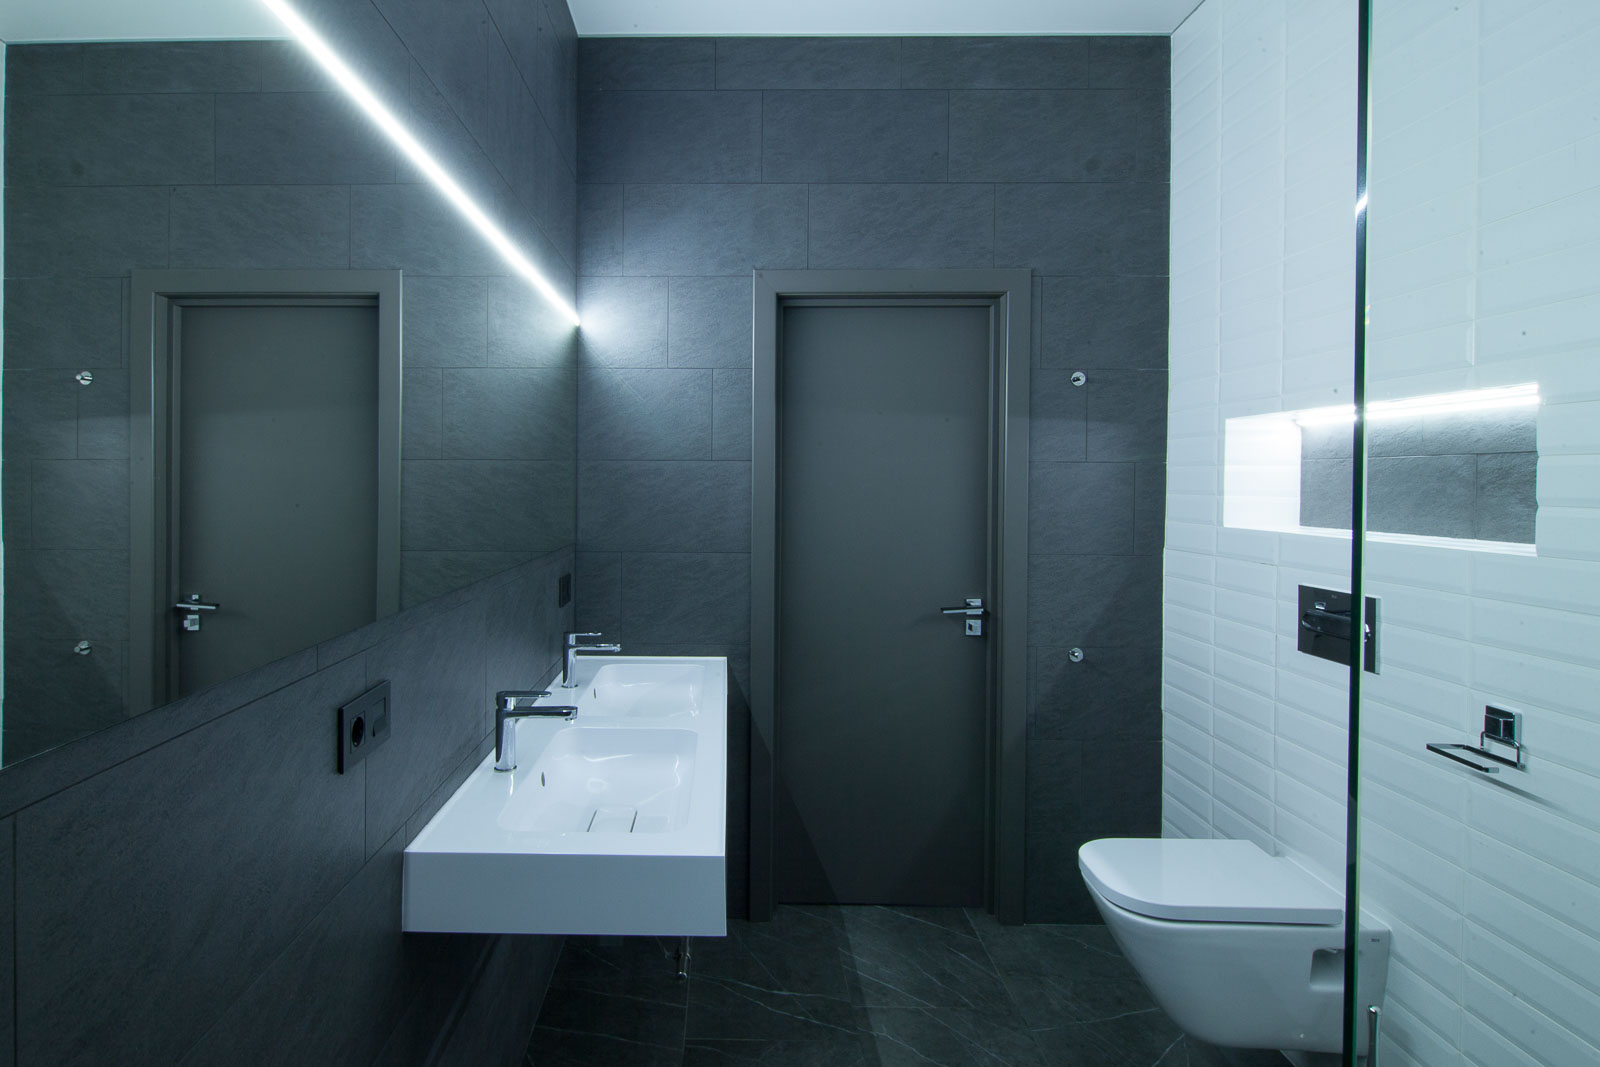 Dark grey and white walls of the bathroom